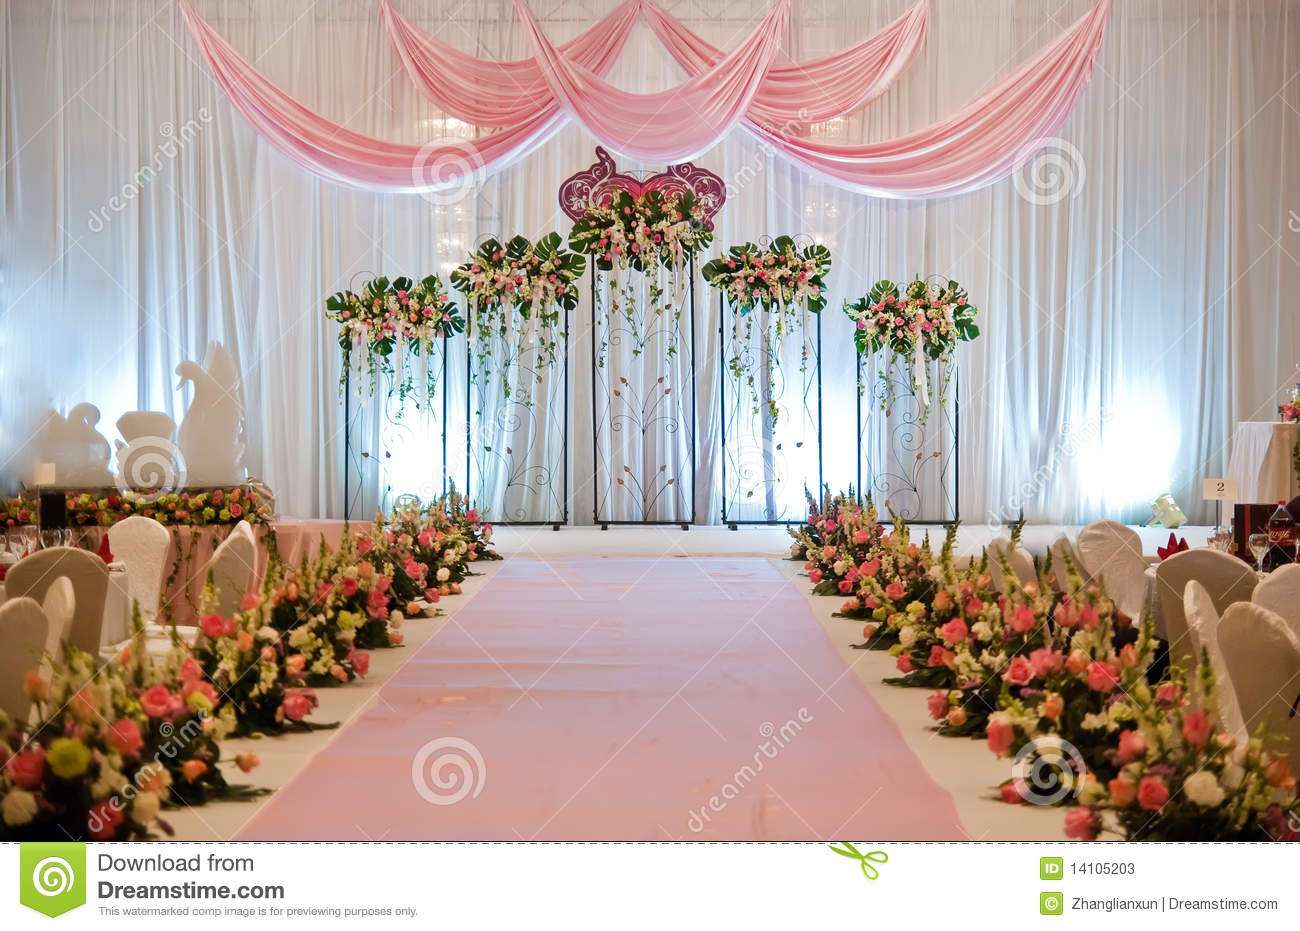 Christian Wedding Stage Decorations Image Collections Wedding